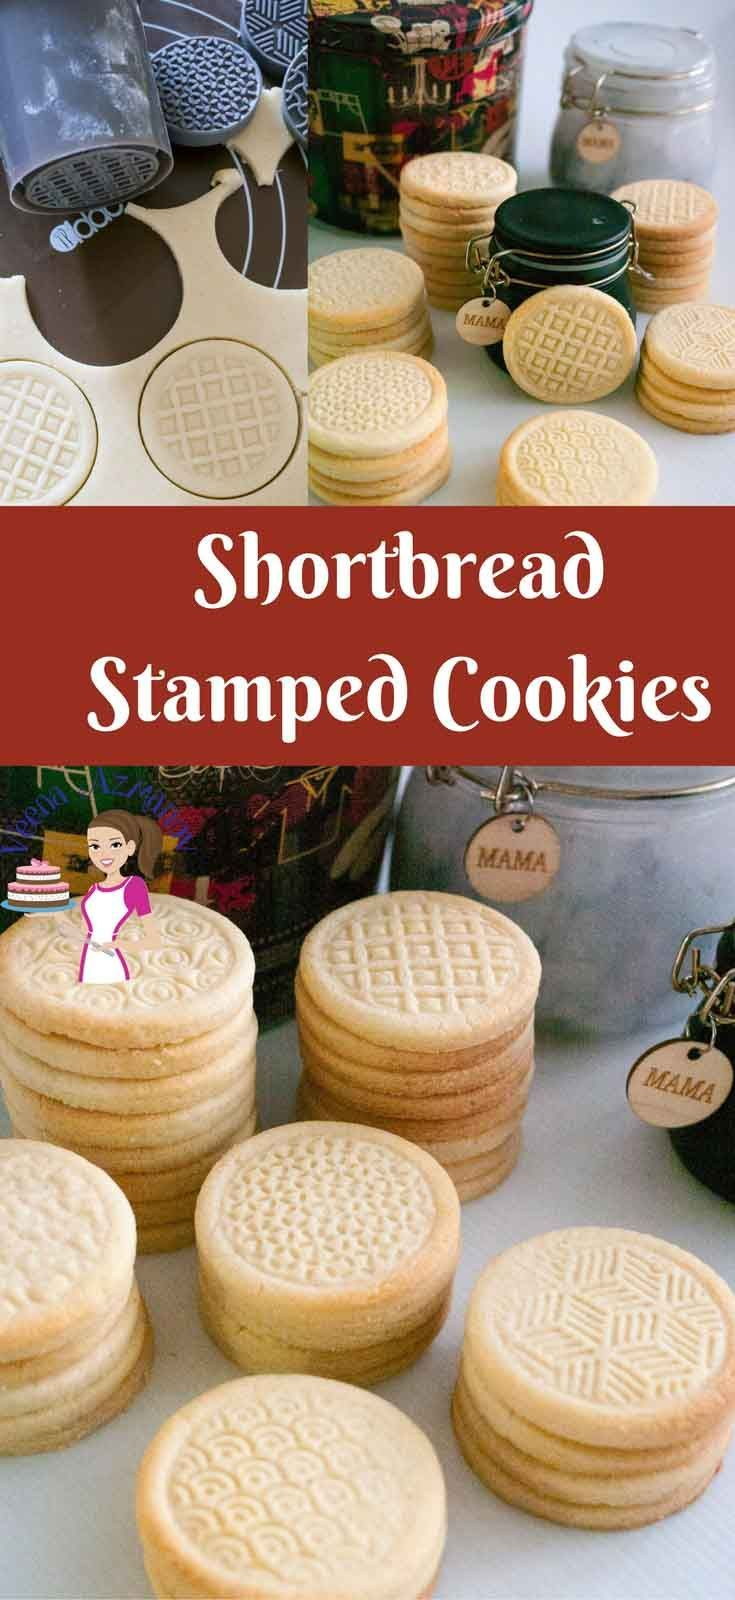 THE BEST SHORTBREAD COOKIES EVER!!  These shortbread stamped cookies are buttery and with a soft crumb that almost melt in the mouth. They are simple and easy to make so they are great when you need an afternoon tea cookie or if you want to gift them as festive treats. @Veenaazmanov #shortbread #cookies #shortbreadcookies #recpe #easy #bestcookies #bestshortbreadcookies